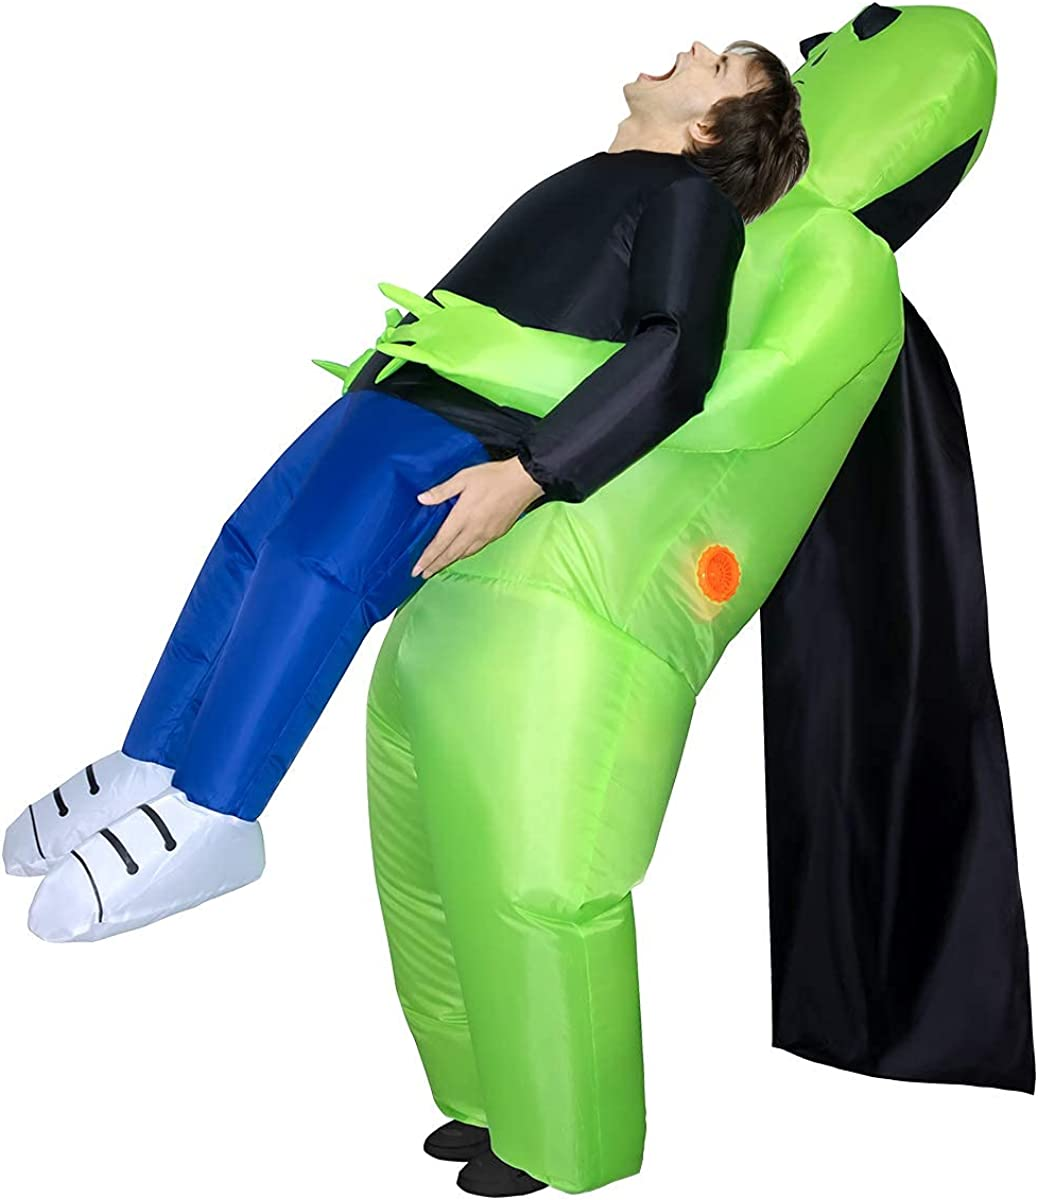 Evoio Inflatable Ranking TOP2 Alien Costume Ranking TOP16 for Halloween Funny Adult